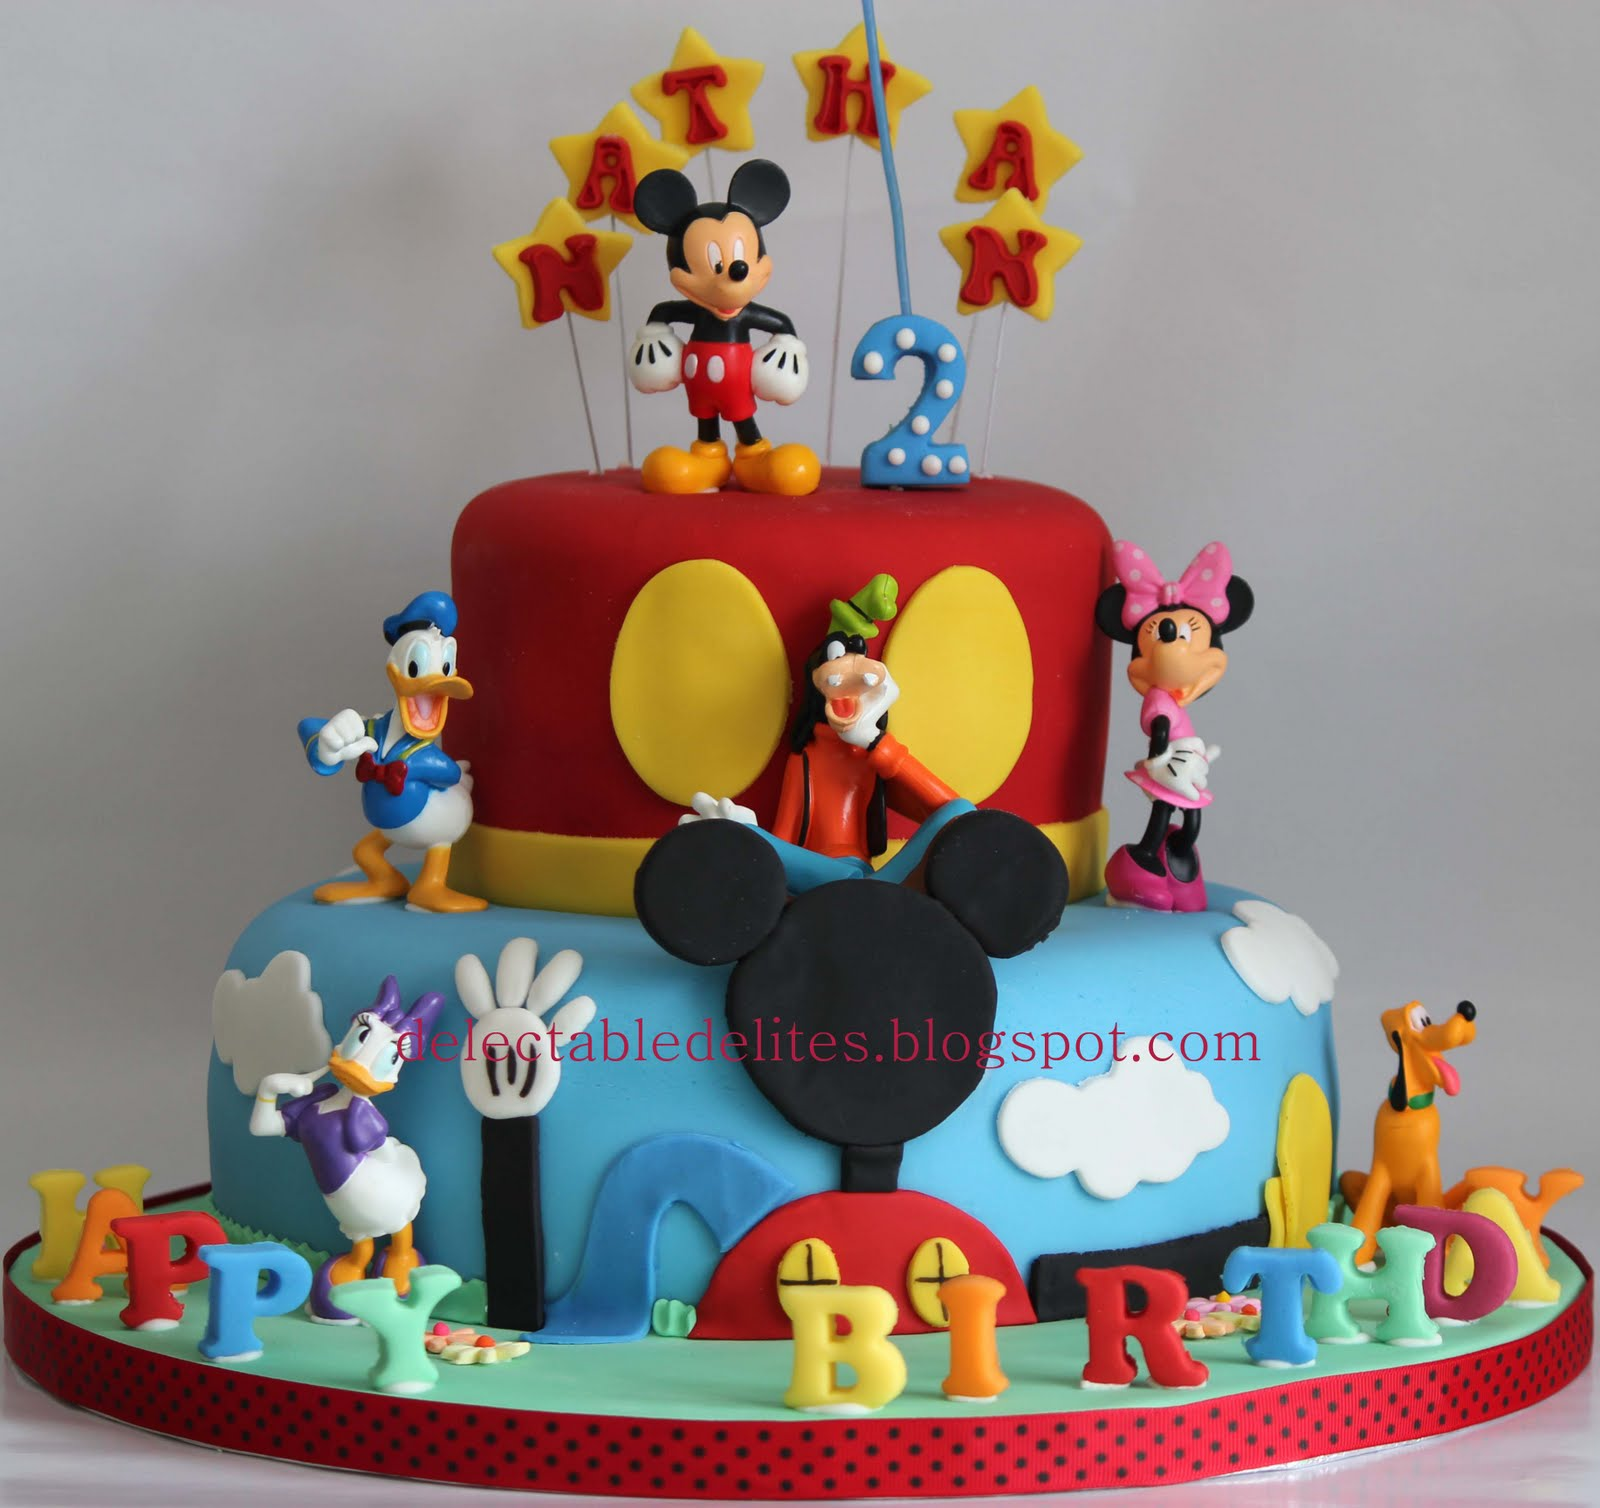 Delectable Delites: Mickey mouse clubhouse cake for Nathan ...